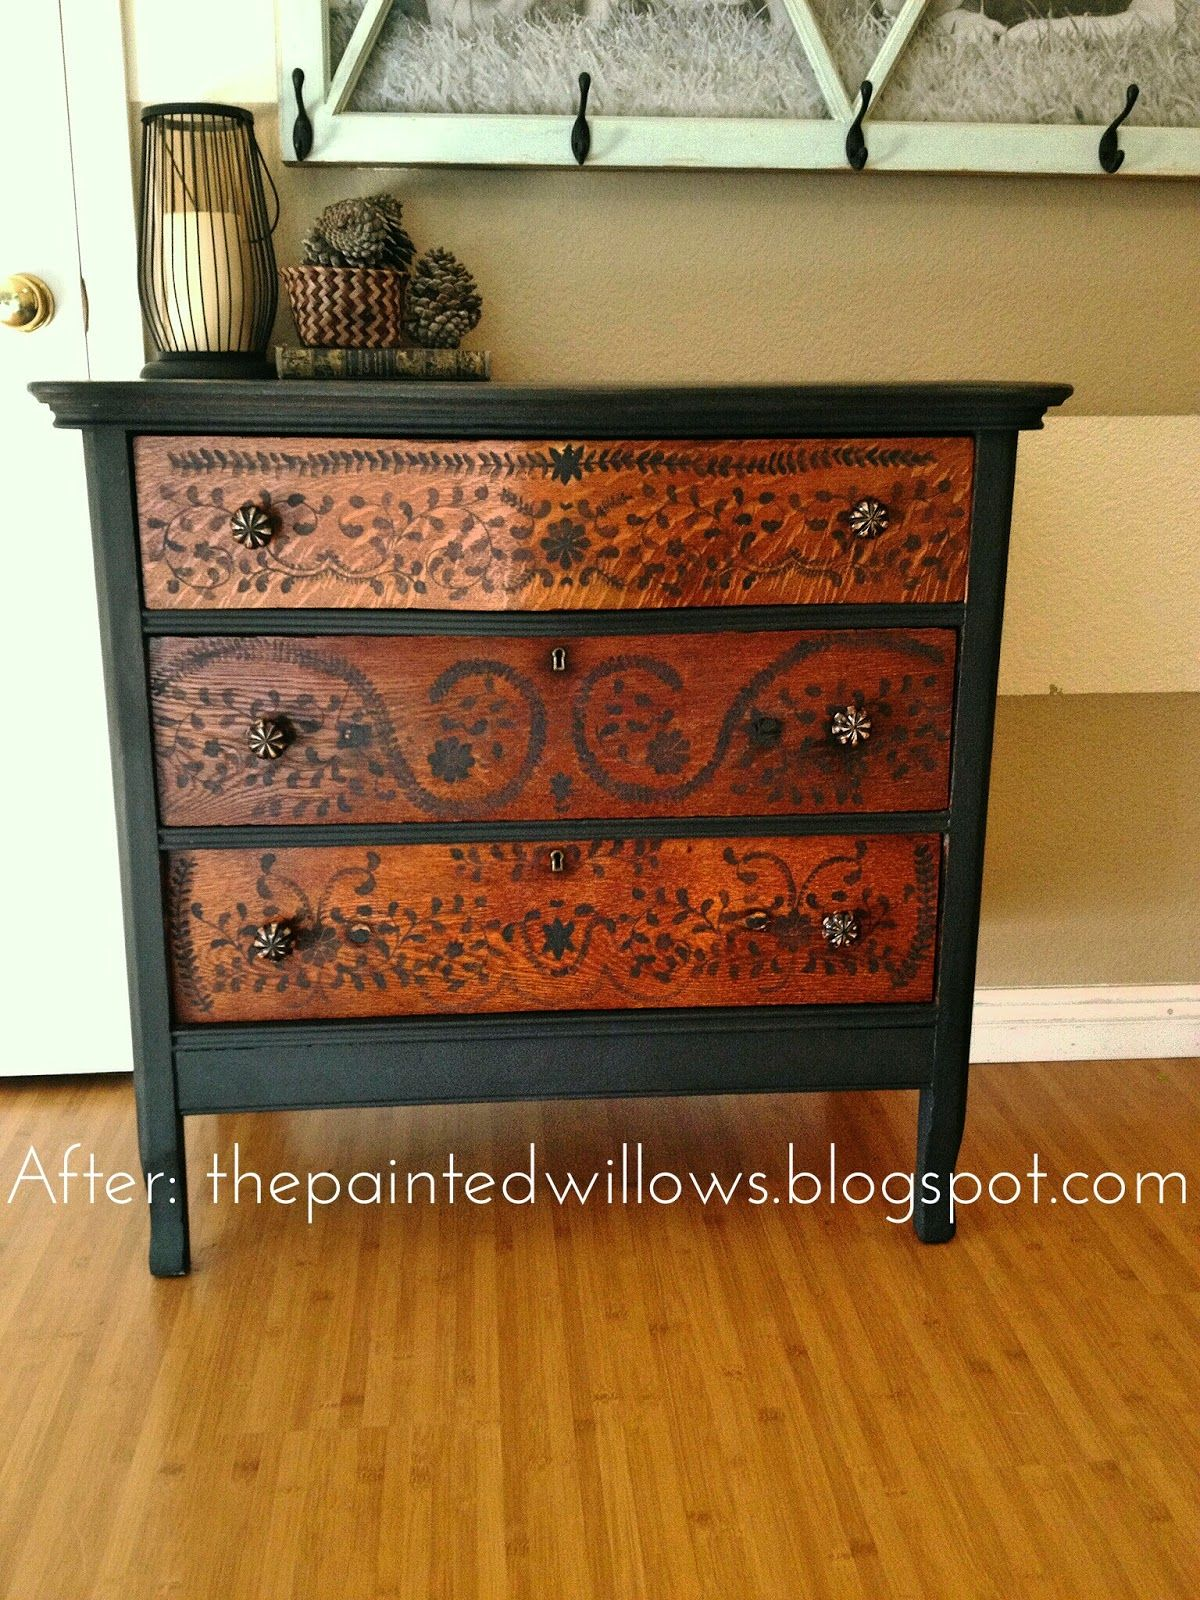 Furniture Gallery Tons Of Before And After Diy Redo Ideas Including This Miss Mustard Seed Inspired Antique Dresser Painted Black